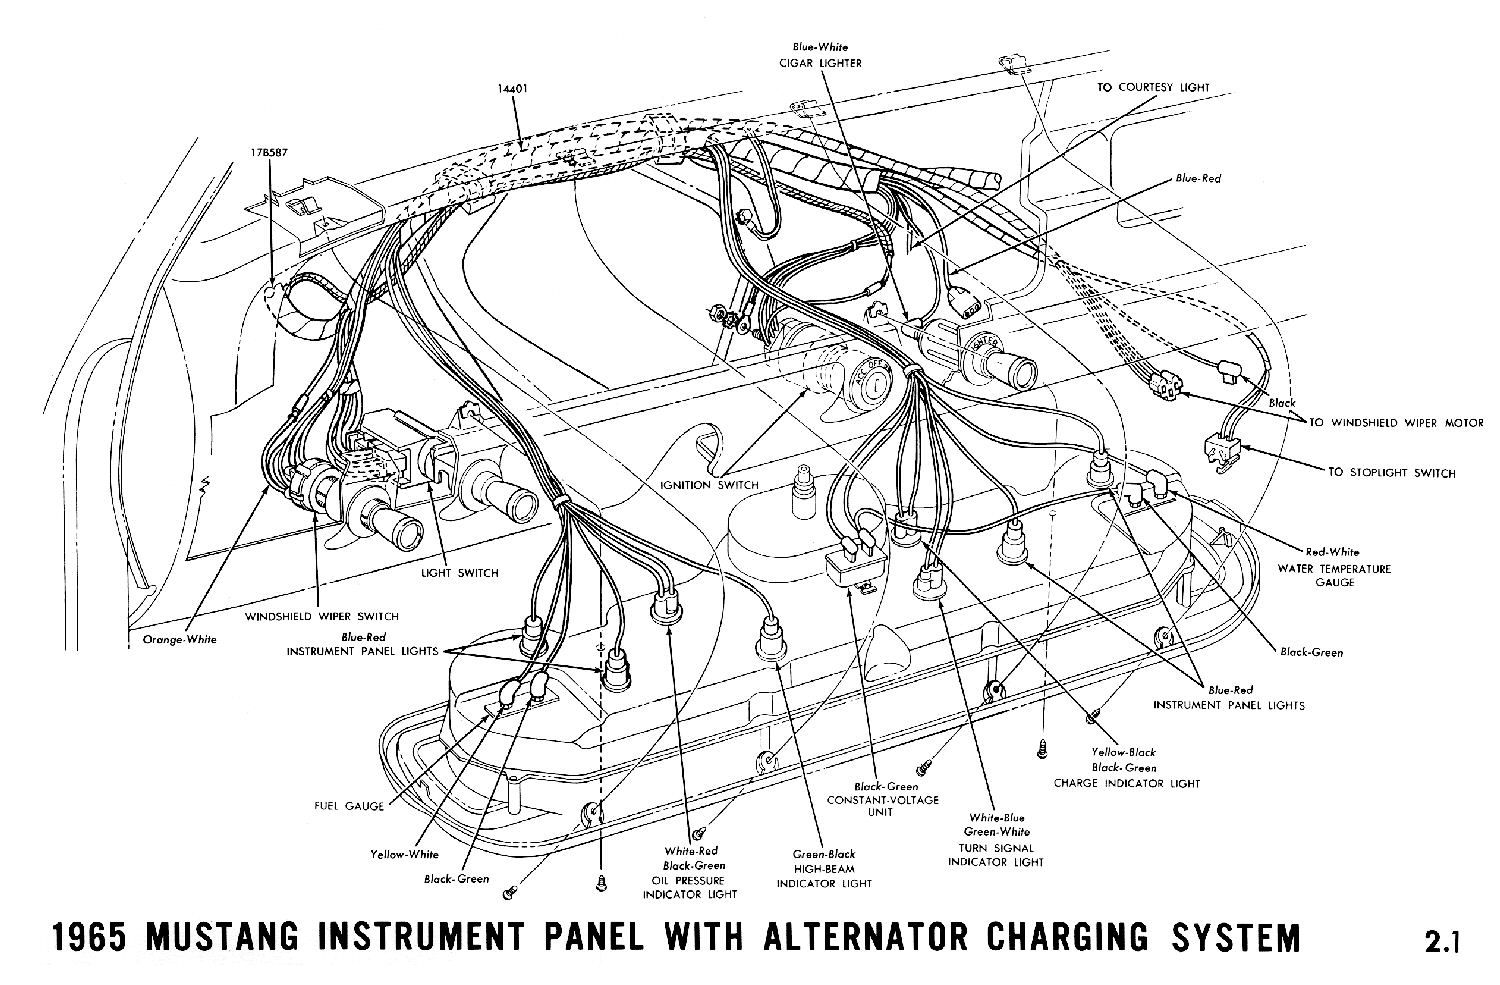 1ea0965aca64ea5f48cb947cfb4007d4 pin by frederic sonck on wiring pinterest ford mustang, ford Wire Harness Assembly at panicattacktreatment.co